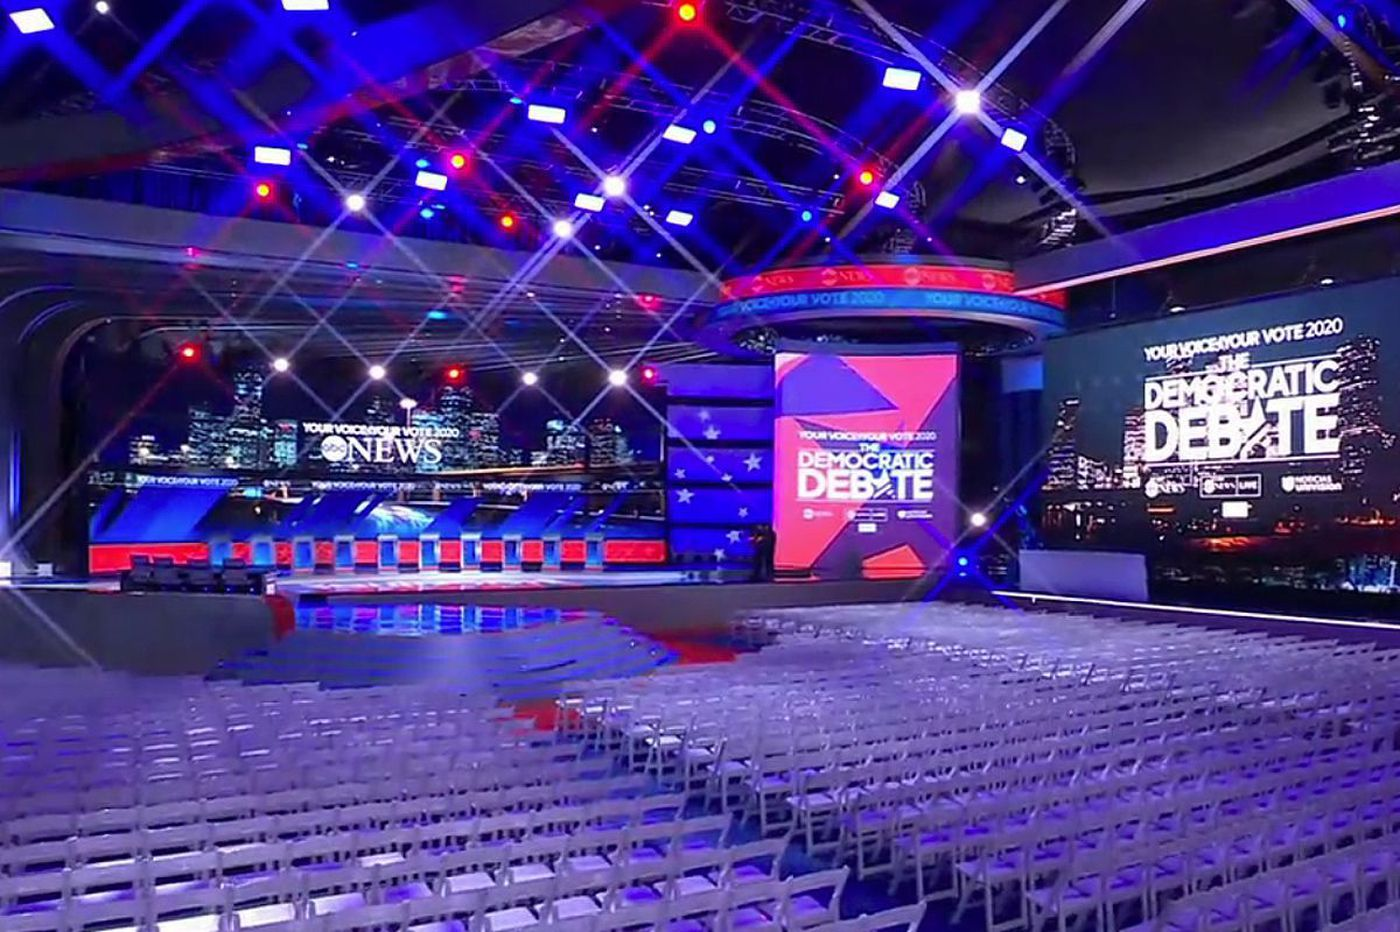 Third Democratic debate: Start time, candidates, how to watch and stream